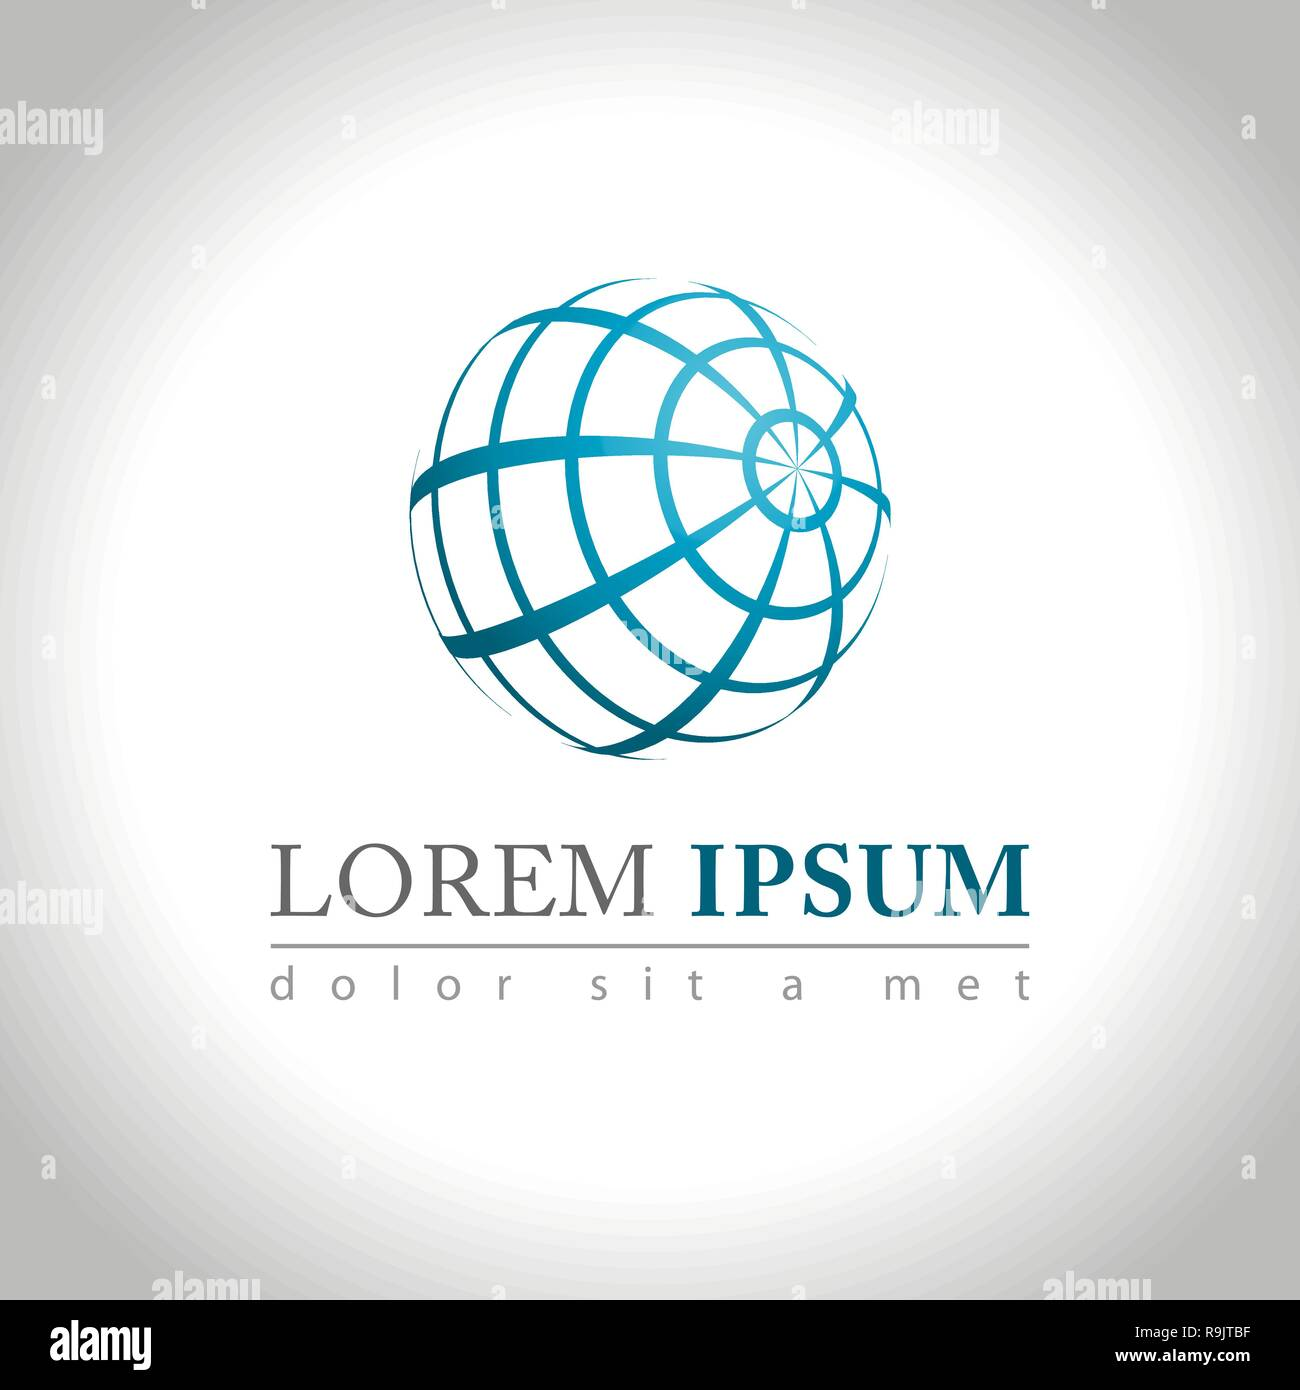 Abstract web Icon and logo sample, vector illusration - Stock Image